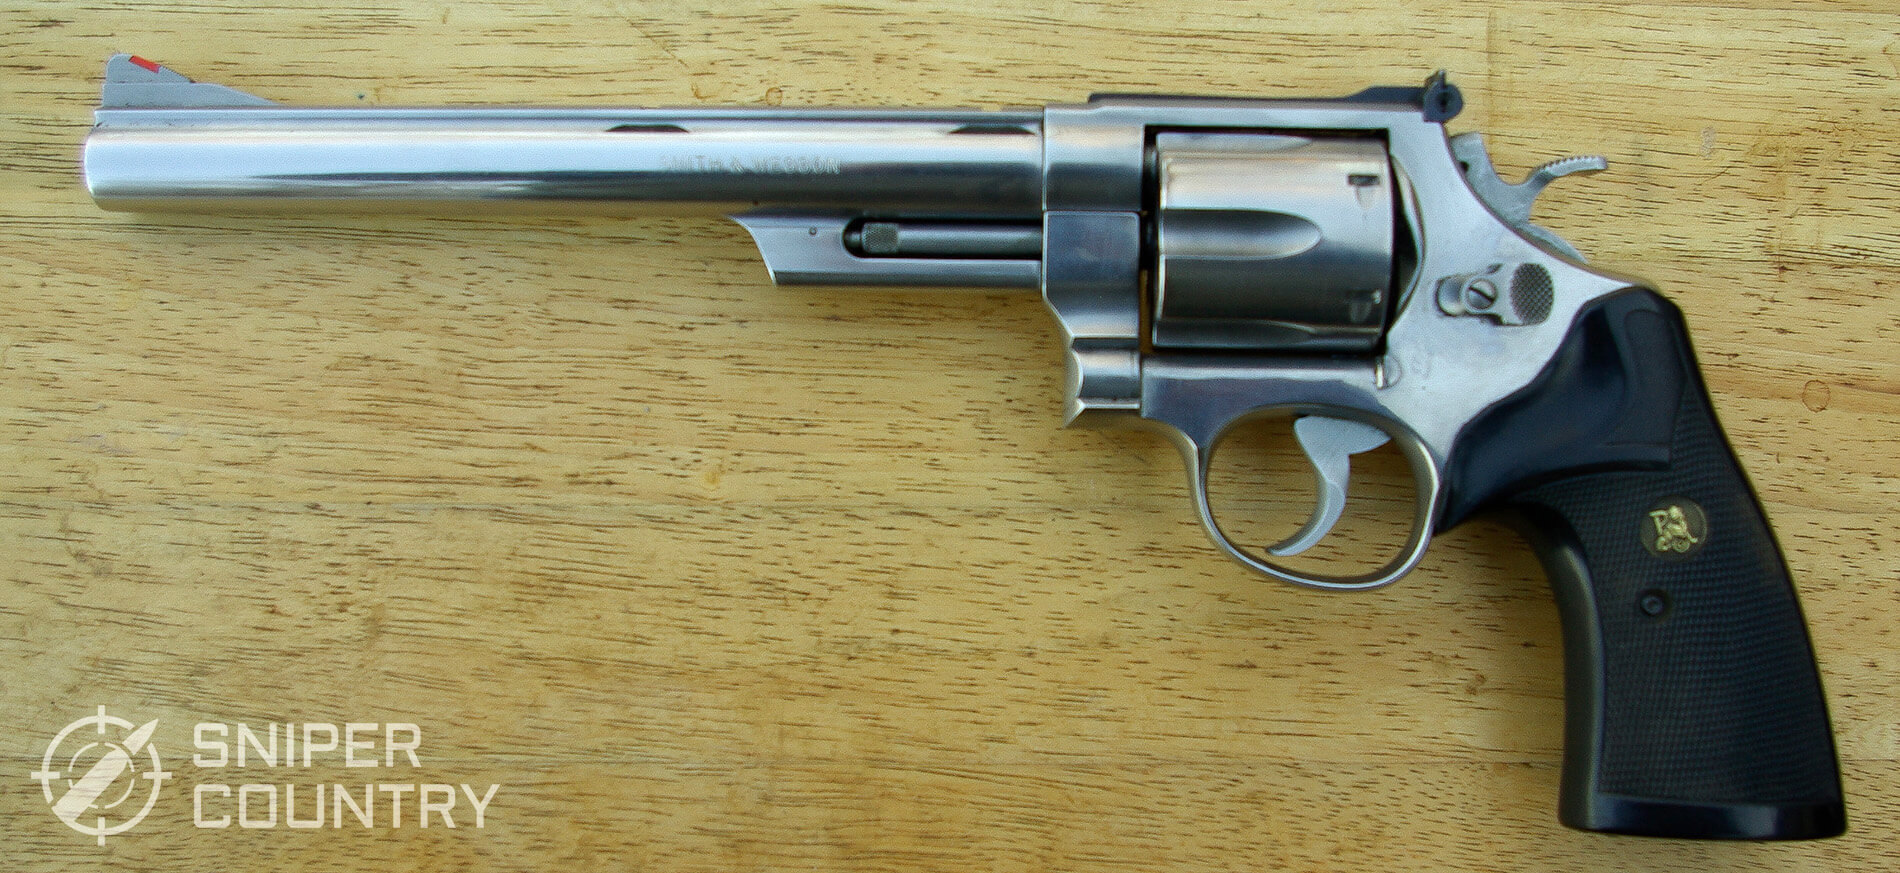 Smith & Wesson Model 629 Left Side